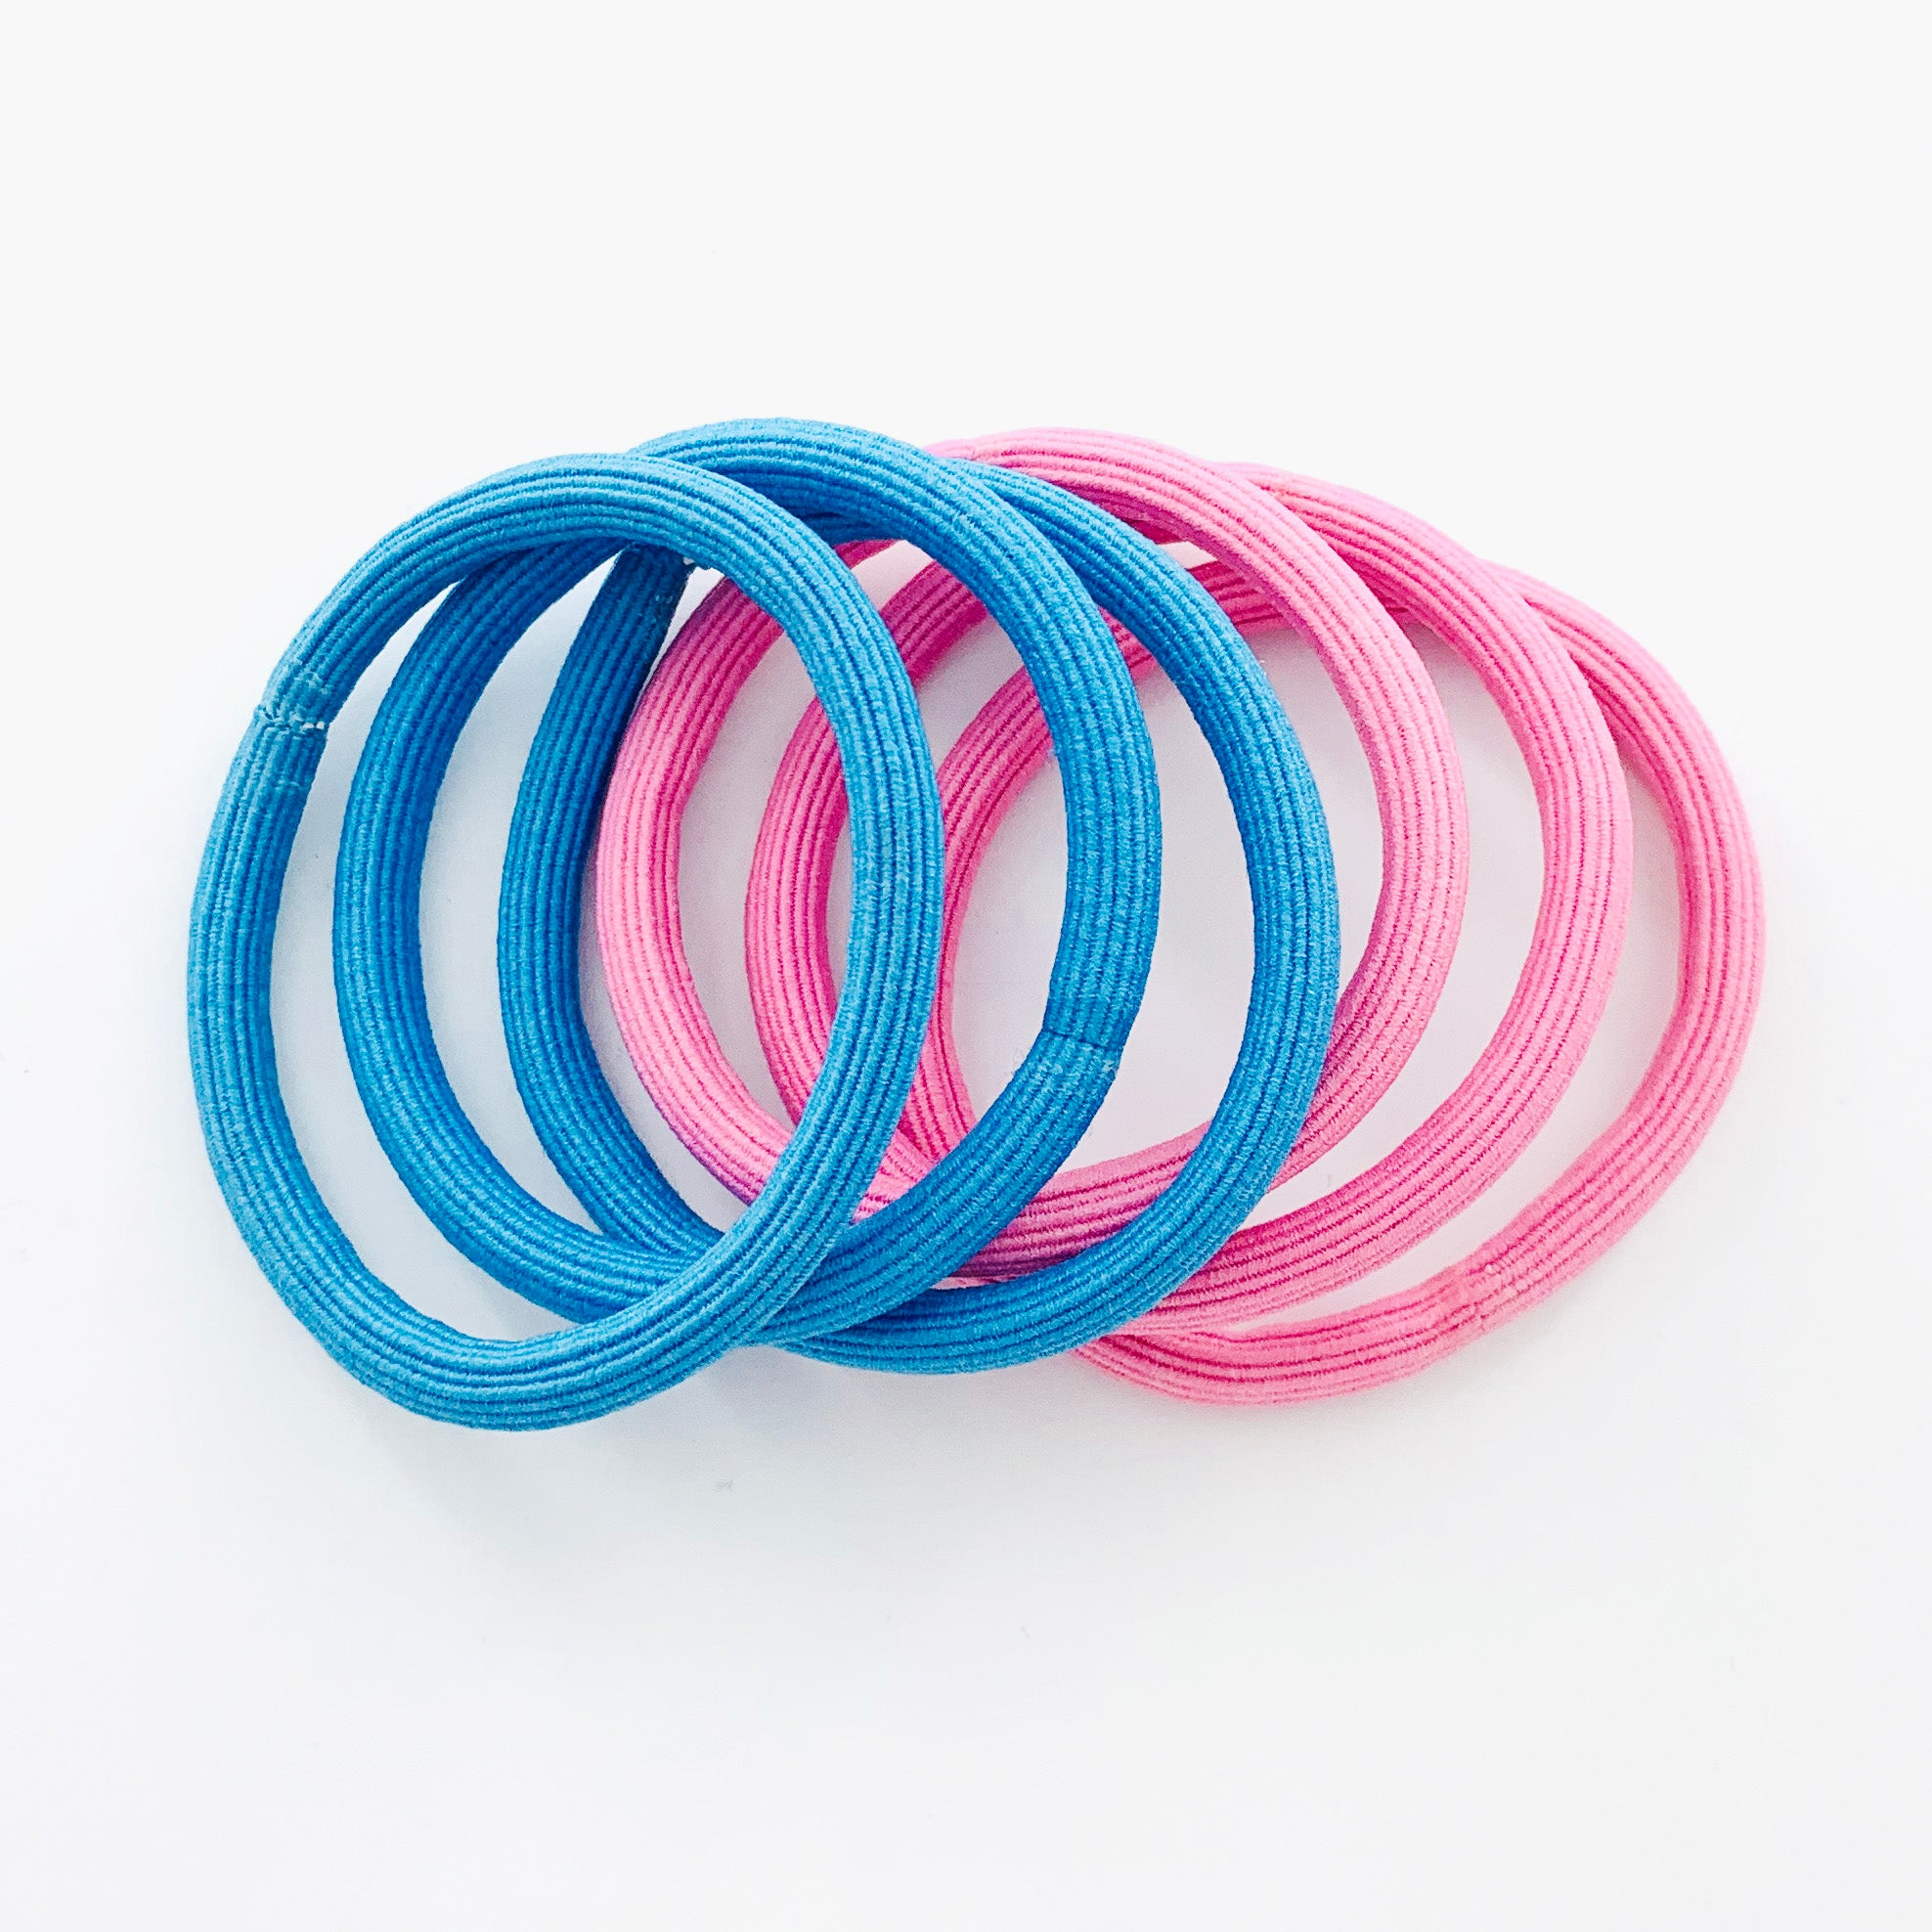 Rubber bands in blue and pink